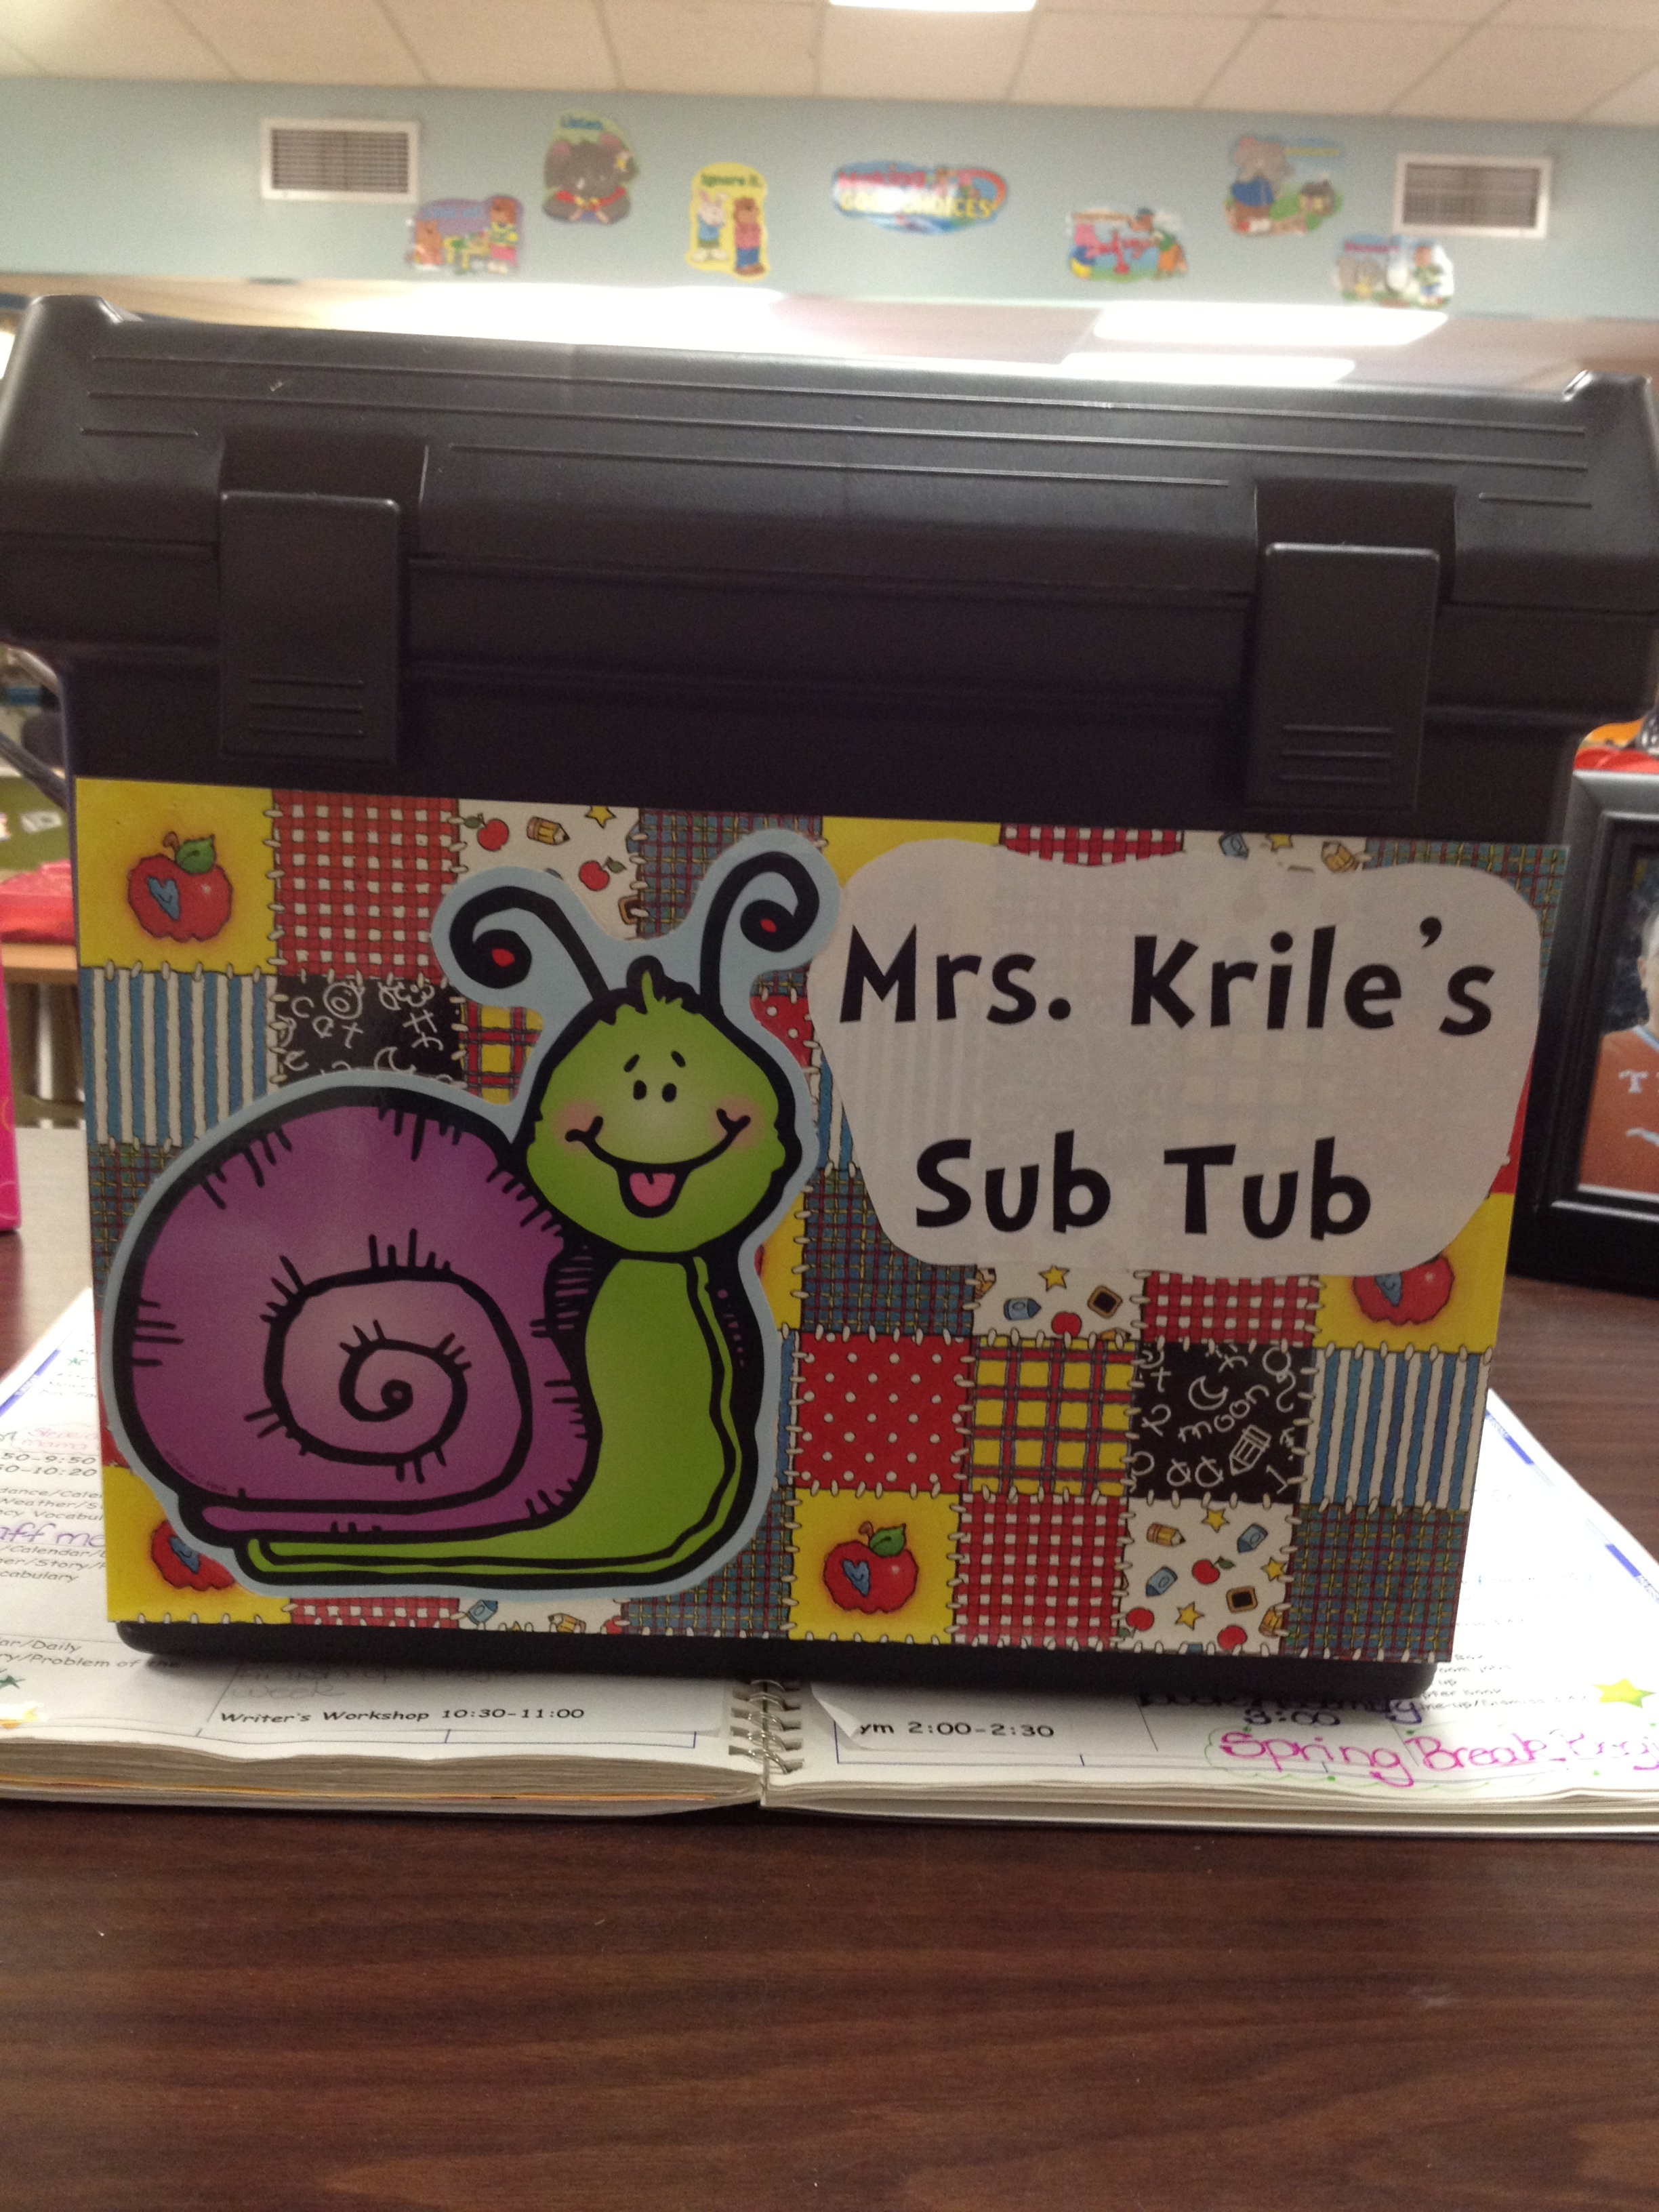 The Sub Tub is one-stop-shopping for anyone who needs to know what to do in the case I'm not around.